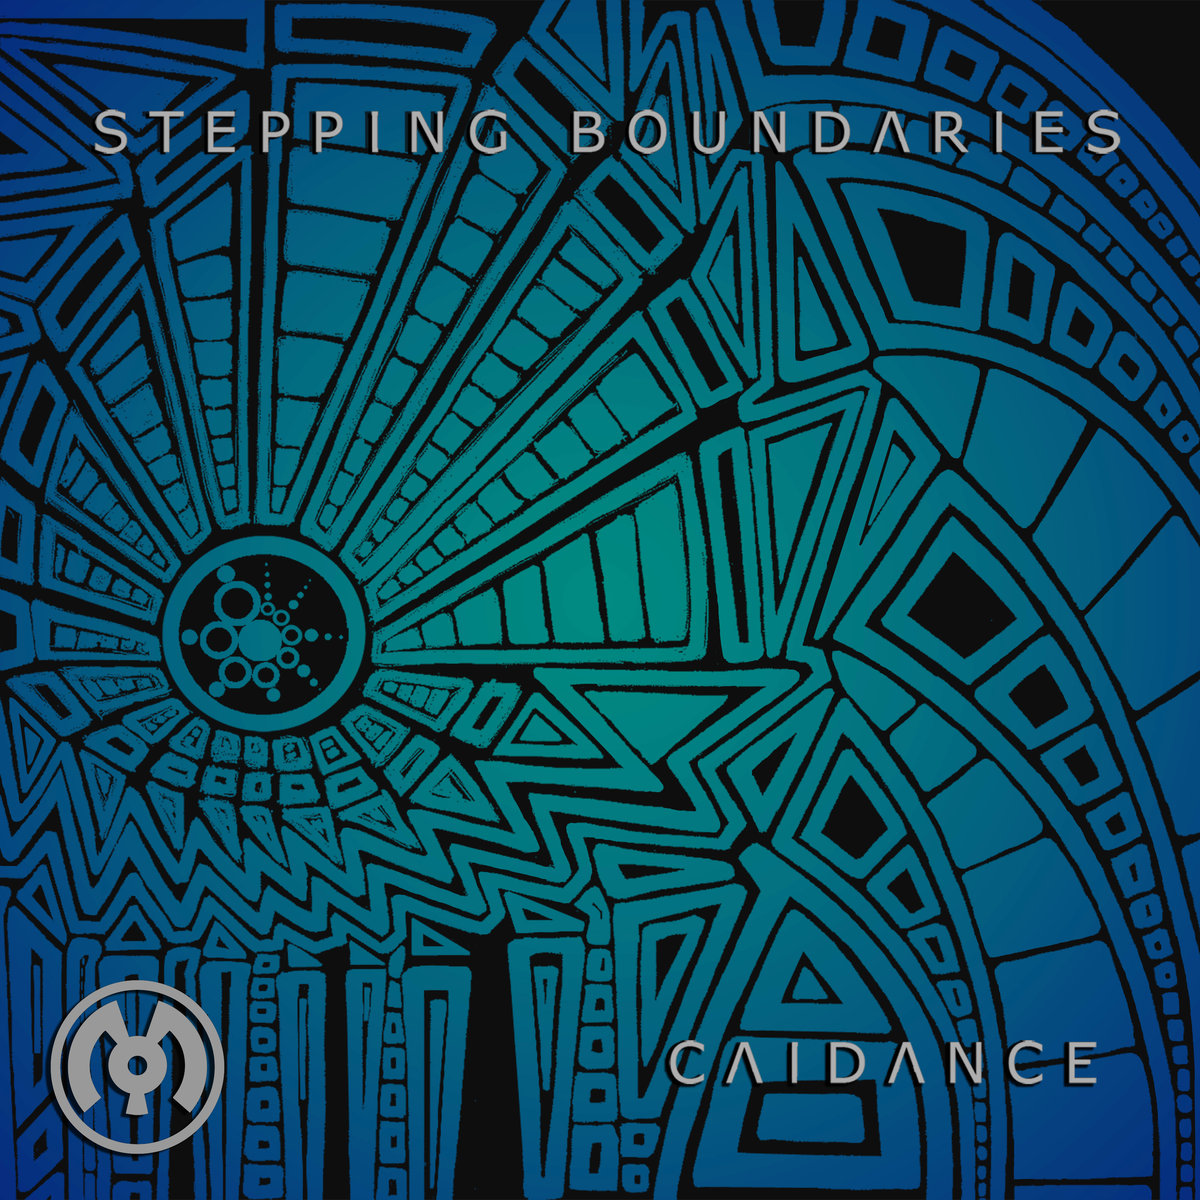 Caidance feat. Andrew Levin - Single Malt Dub @ 'Stepping Boundaries' album (electronic, dubstep)